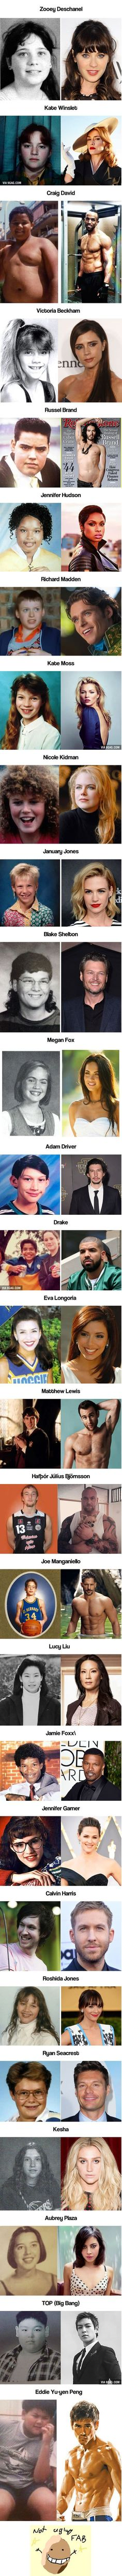 Celebs who were once ugly ducklings Best Funny Pictures, Funny Images, Barba Sexy, Funny Jokes, Hilarious, Ugly To Pretty, Ugly Duckling, Actor Photo, Mind Blown